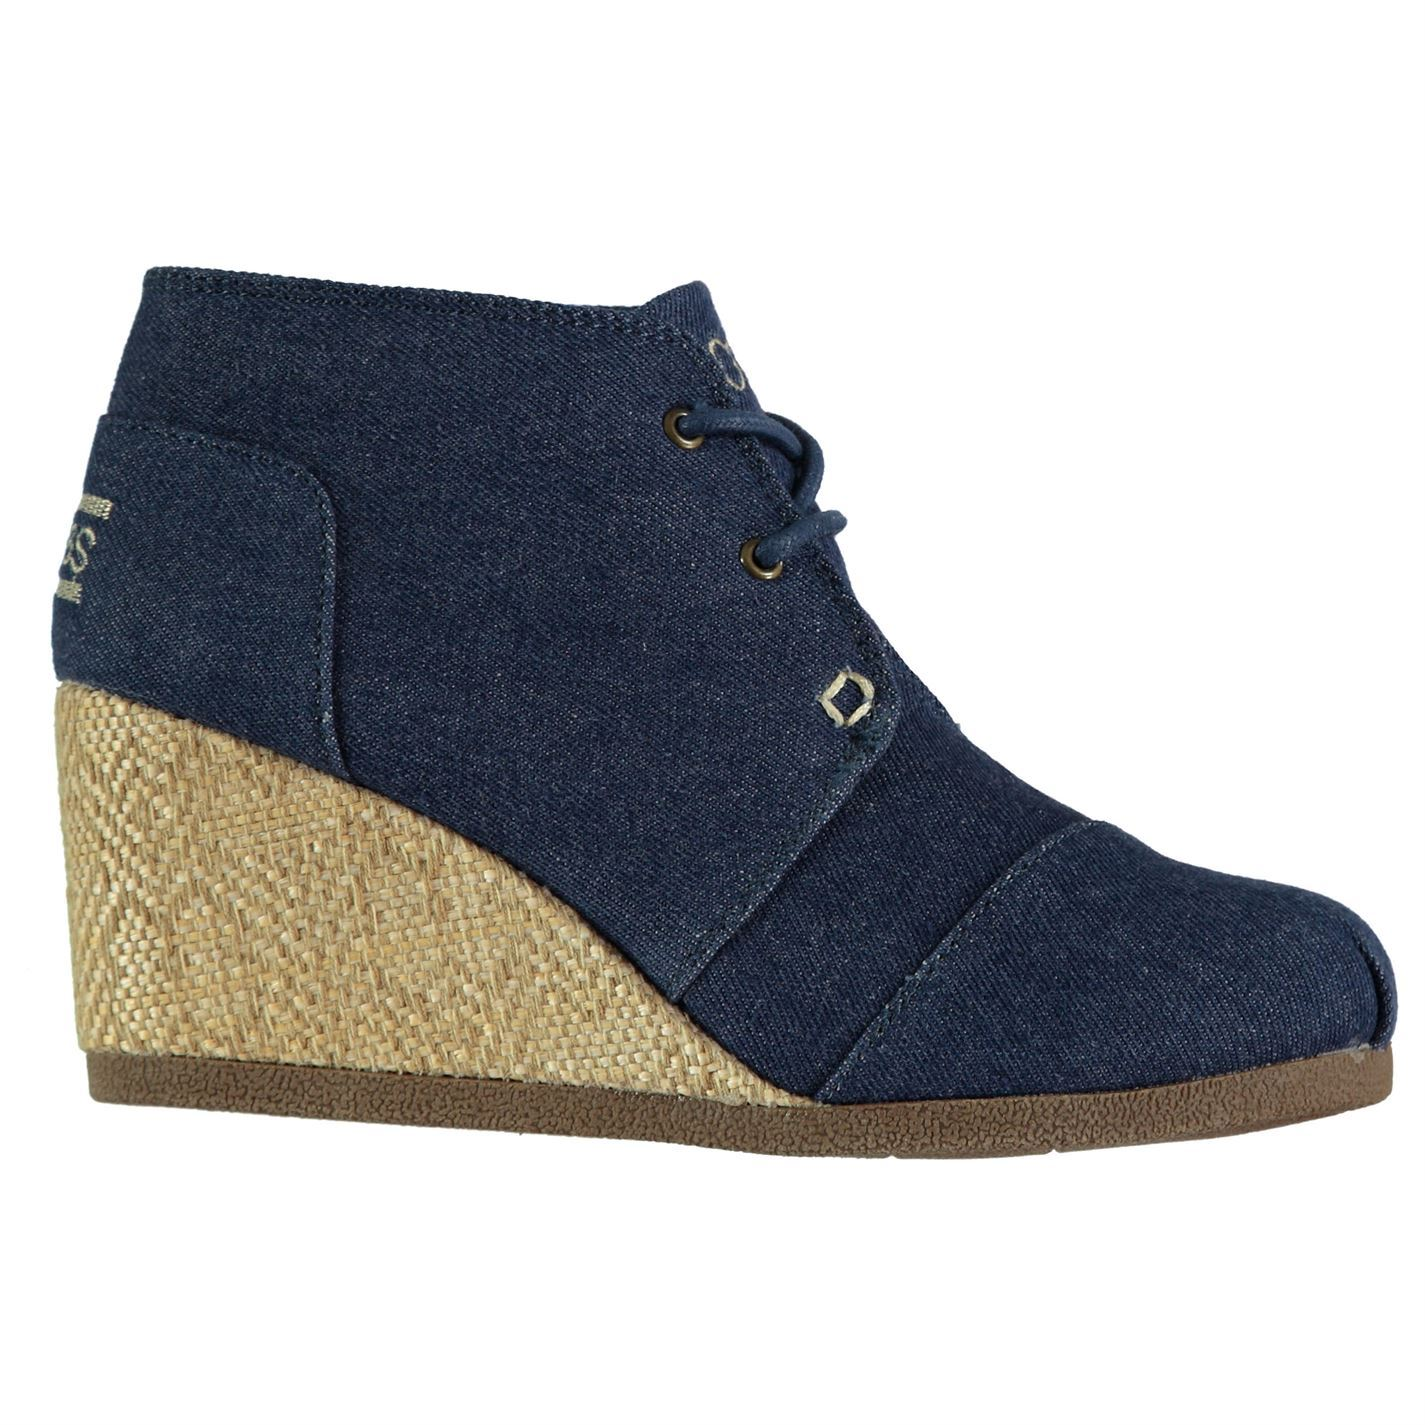 8a866900601e Skechers Womens Bobs High Notes Wedges Shoes Lace Up Memory Foam ...